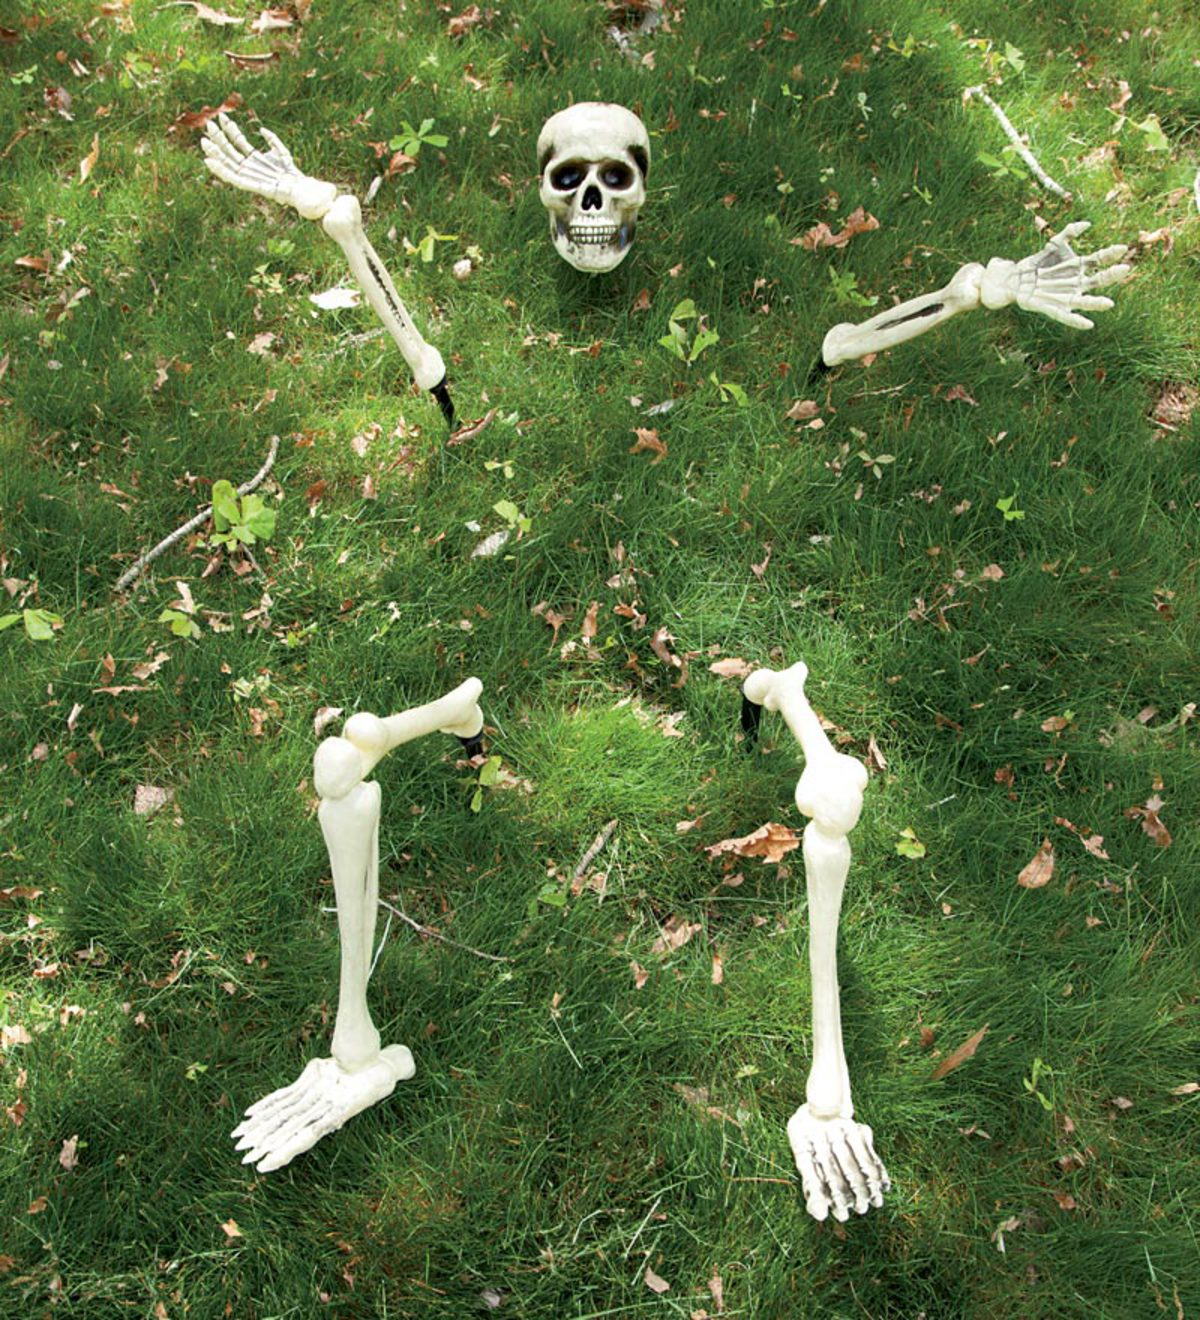 Buried in the Lawn Skeleton Halloween Decoration